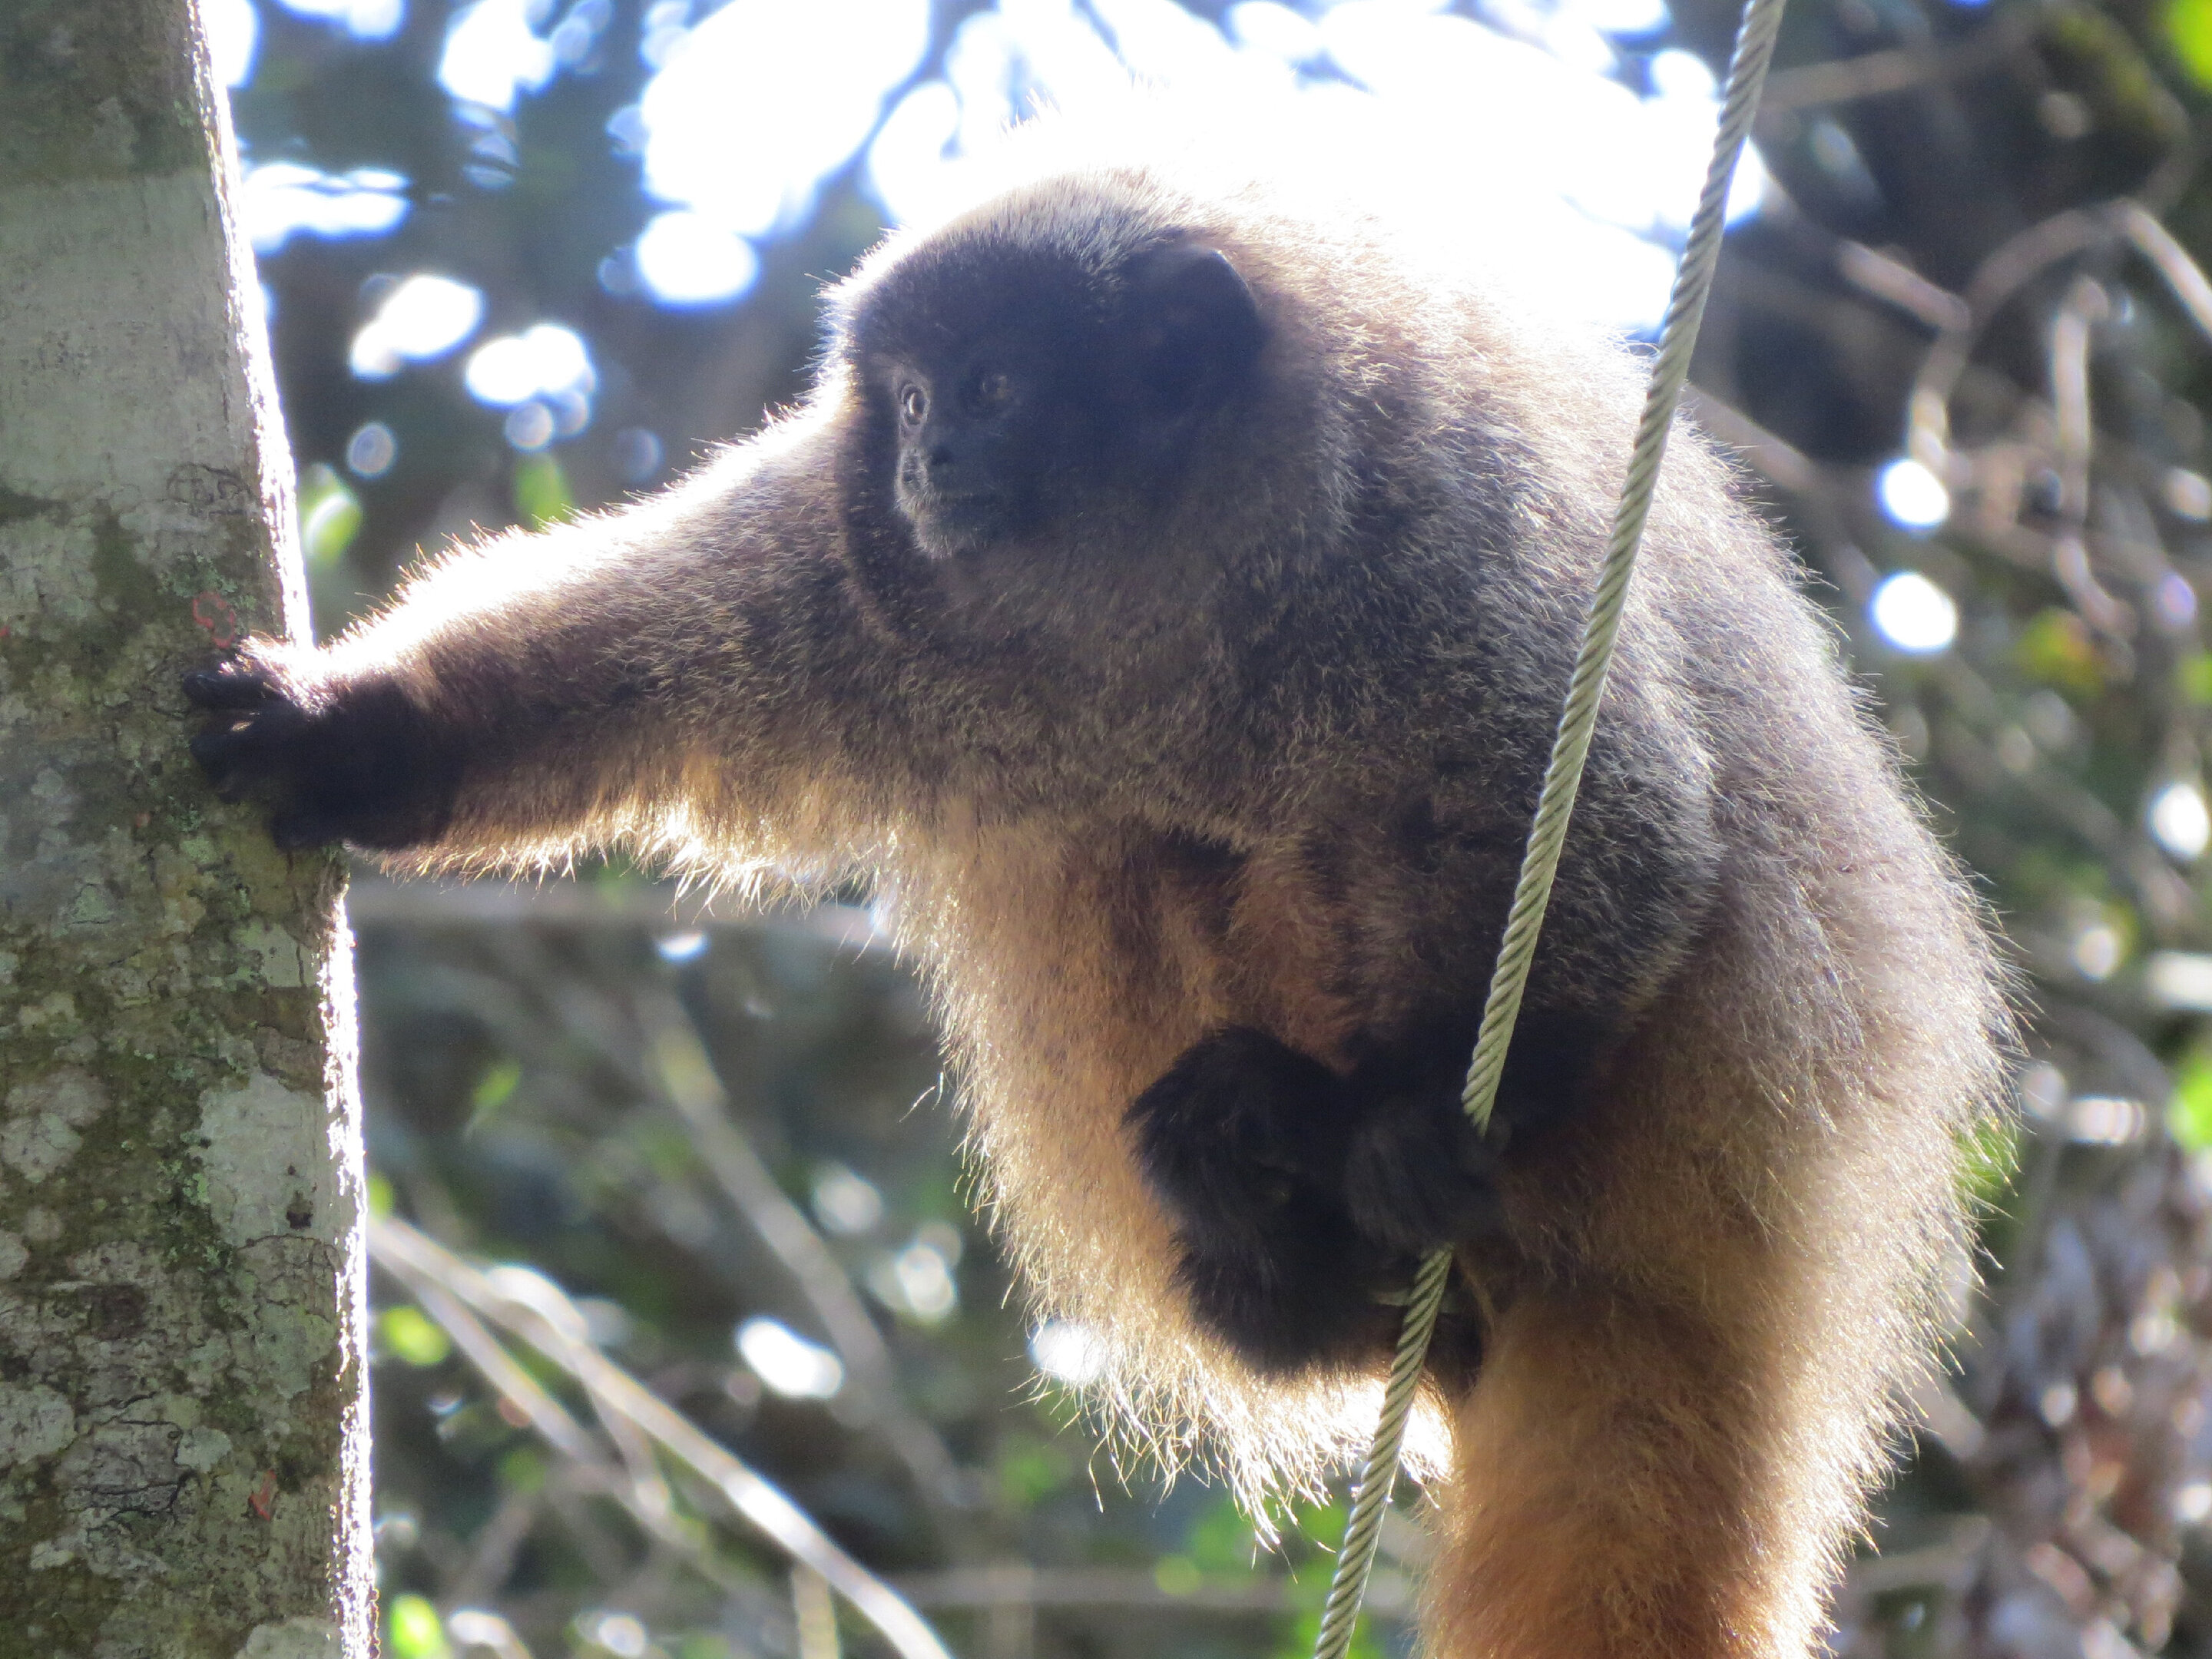 photo of Titi monkeys use probabilistic predator calls to alert others in their group image